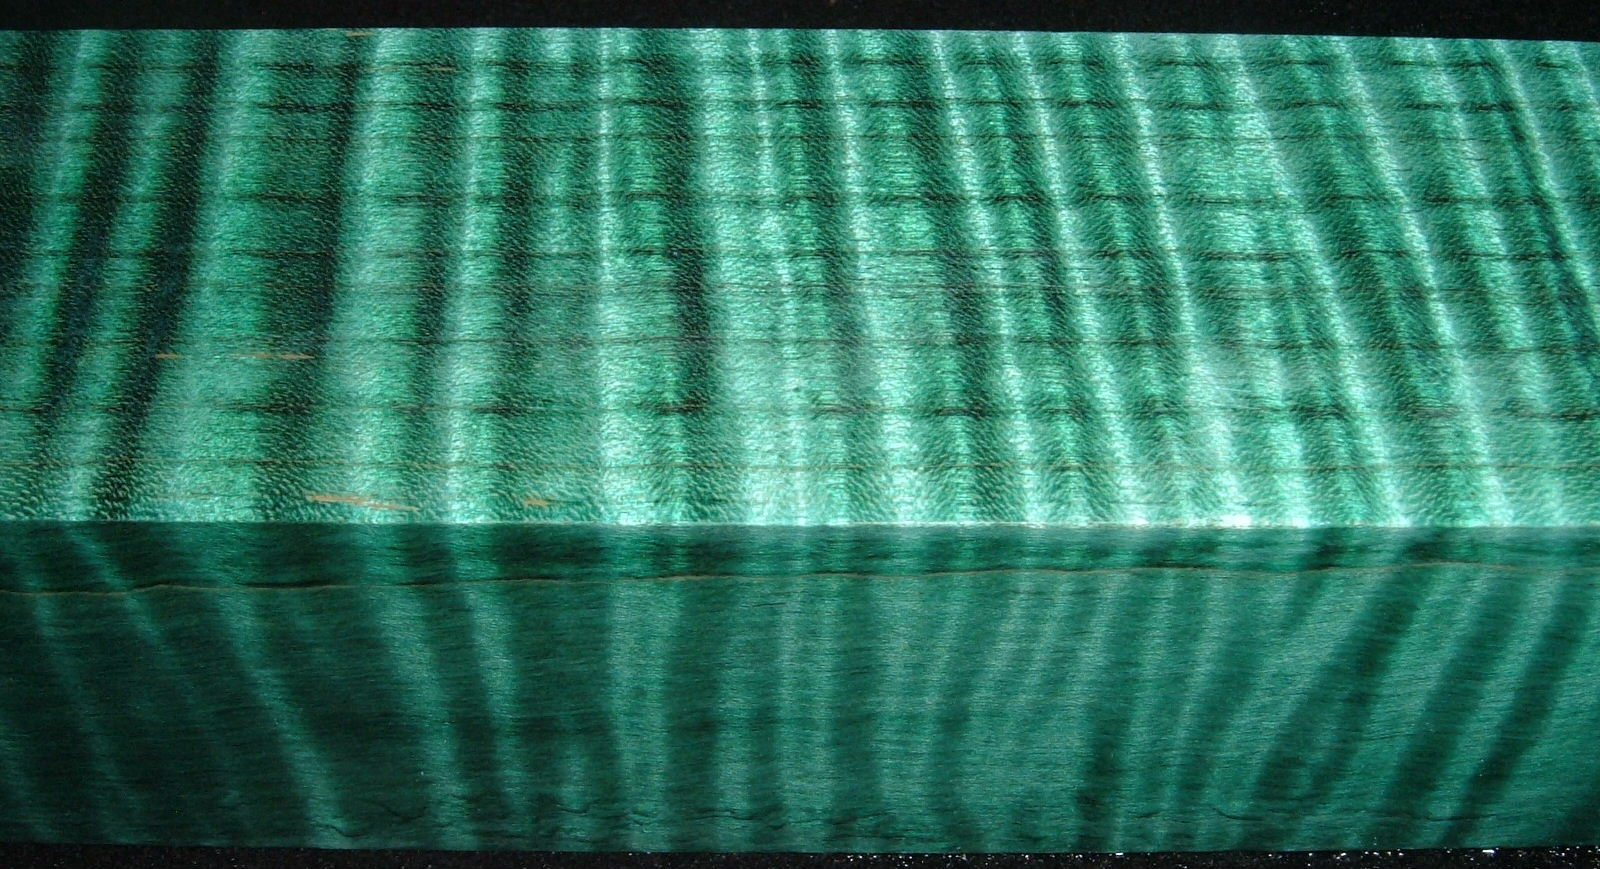 Z527, 1-7/8x1-7/8x6-1/4 Teal, Curly Tiger Maple Dyed Stabilized, wood turning block